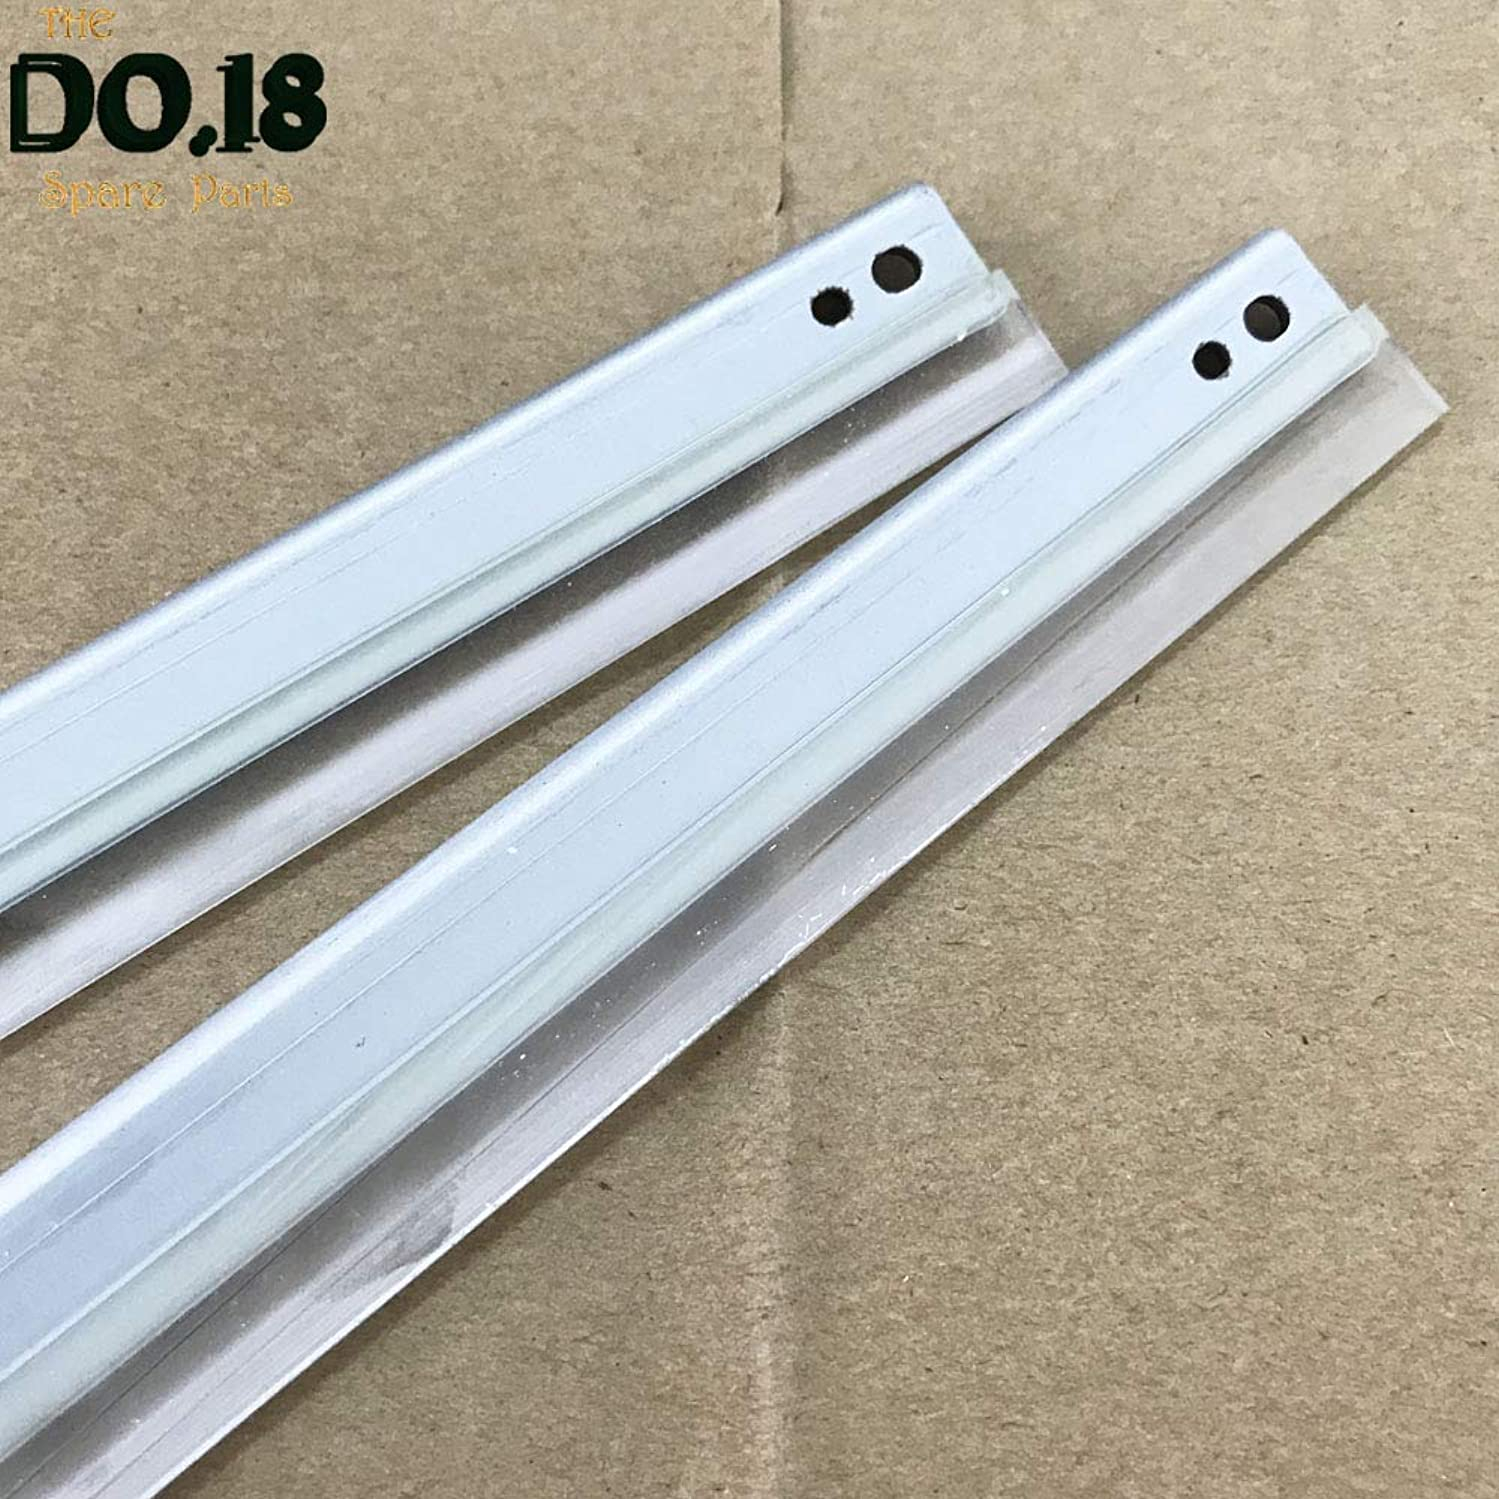 Printer Parts 2pcs Drum Cleaning Blade for Yoton MPC3003 MPC3503 MPC4503 MPC5503 MPC6003 MPC 3003 3503 4503 5503 6003 WB Blade Copier Part